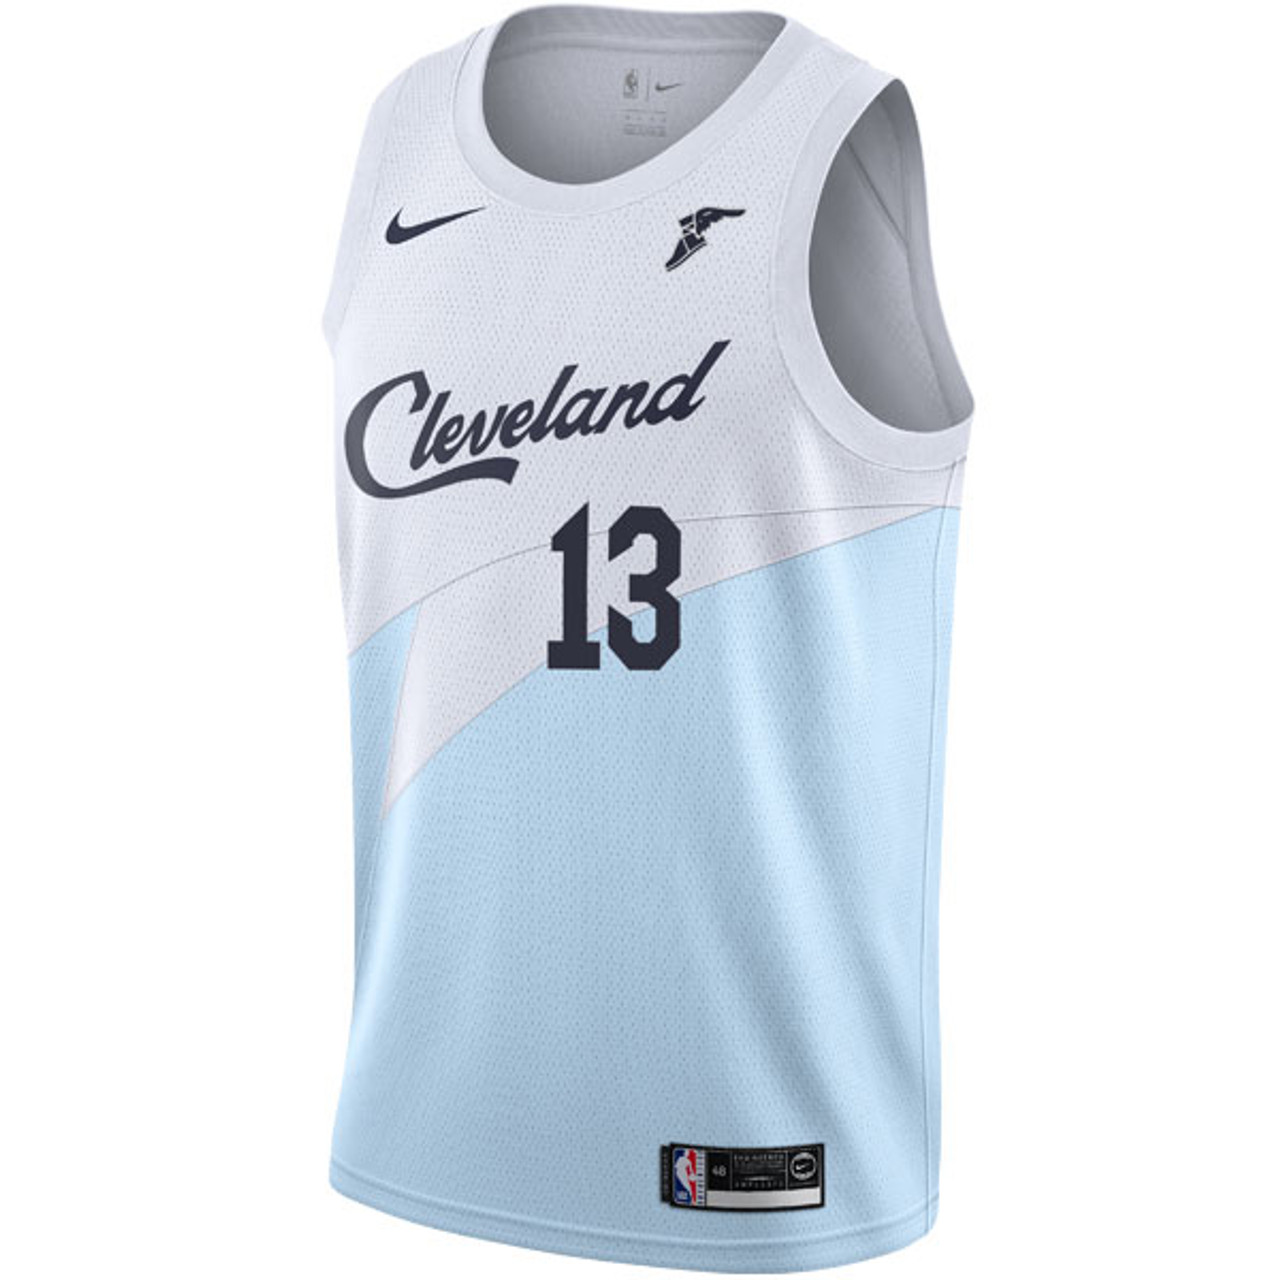 8cddcd07f5b  ICE   13 Tristan Thompson Earned Jersey with Wingfoot